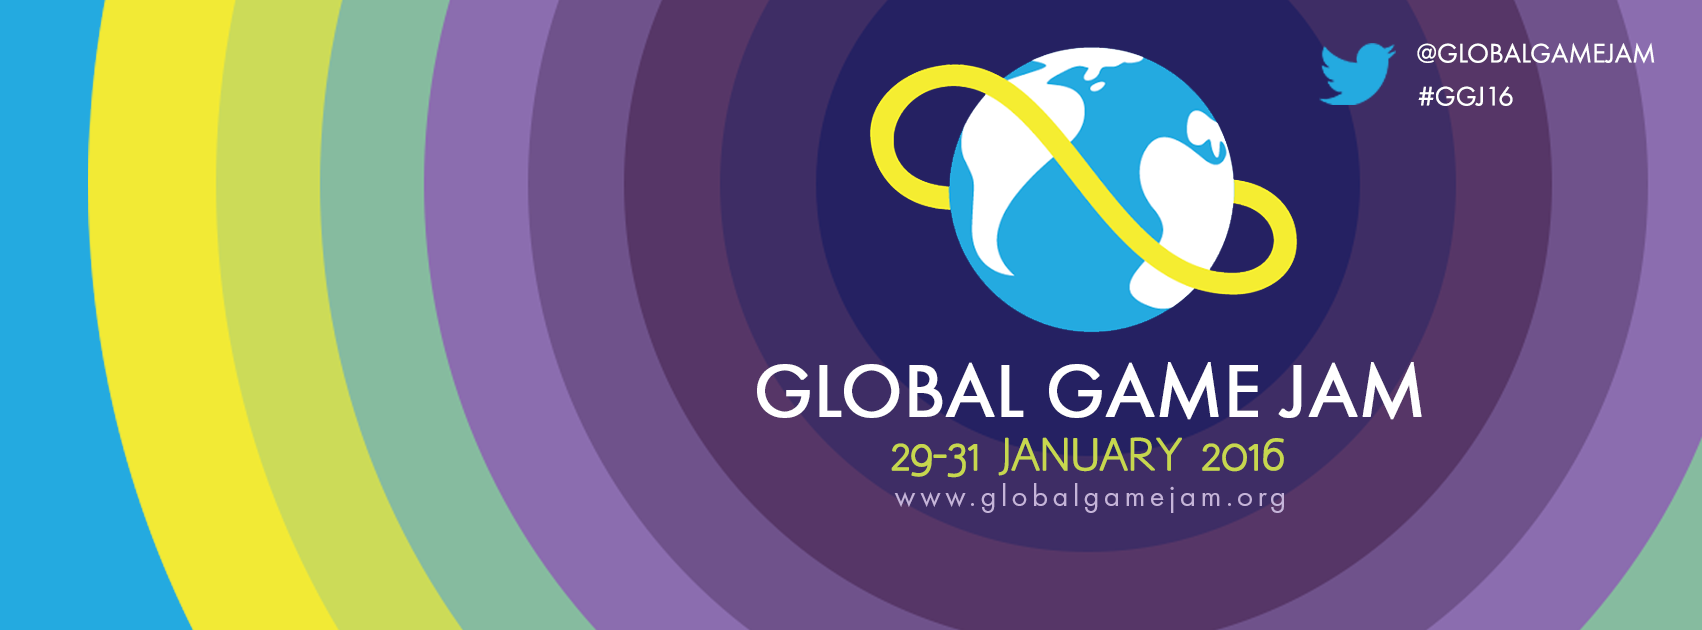 Global Game Jam 2016 | 29th-31st January